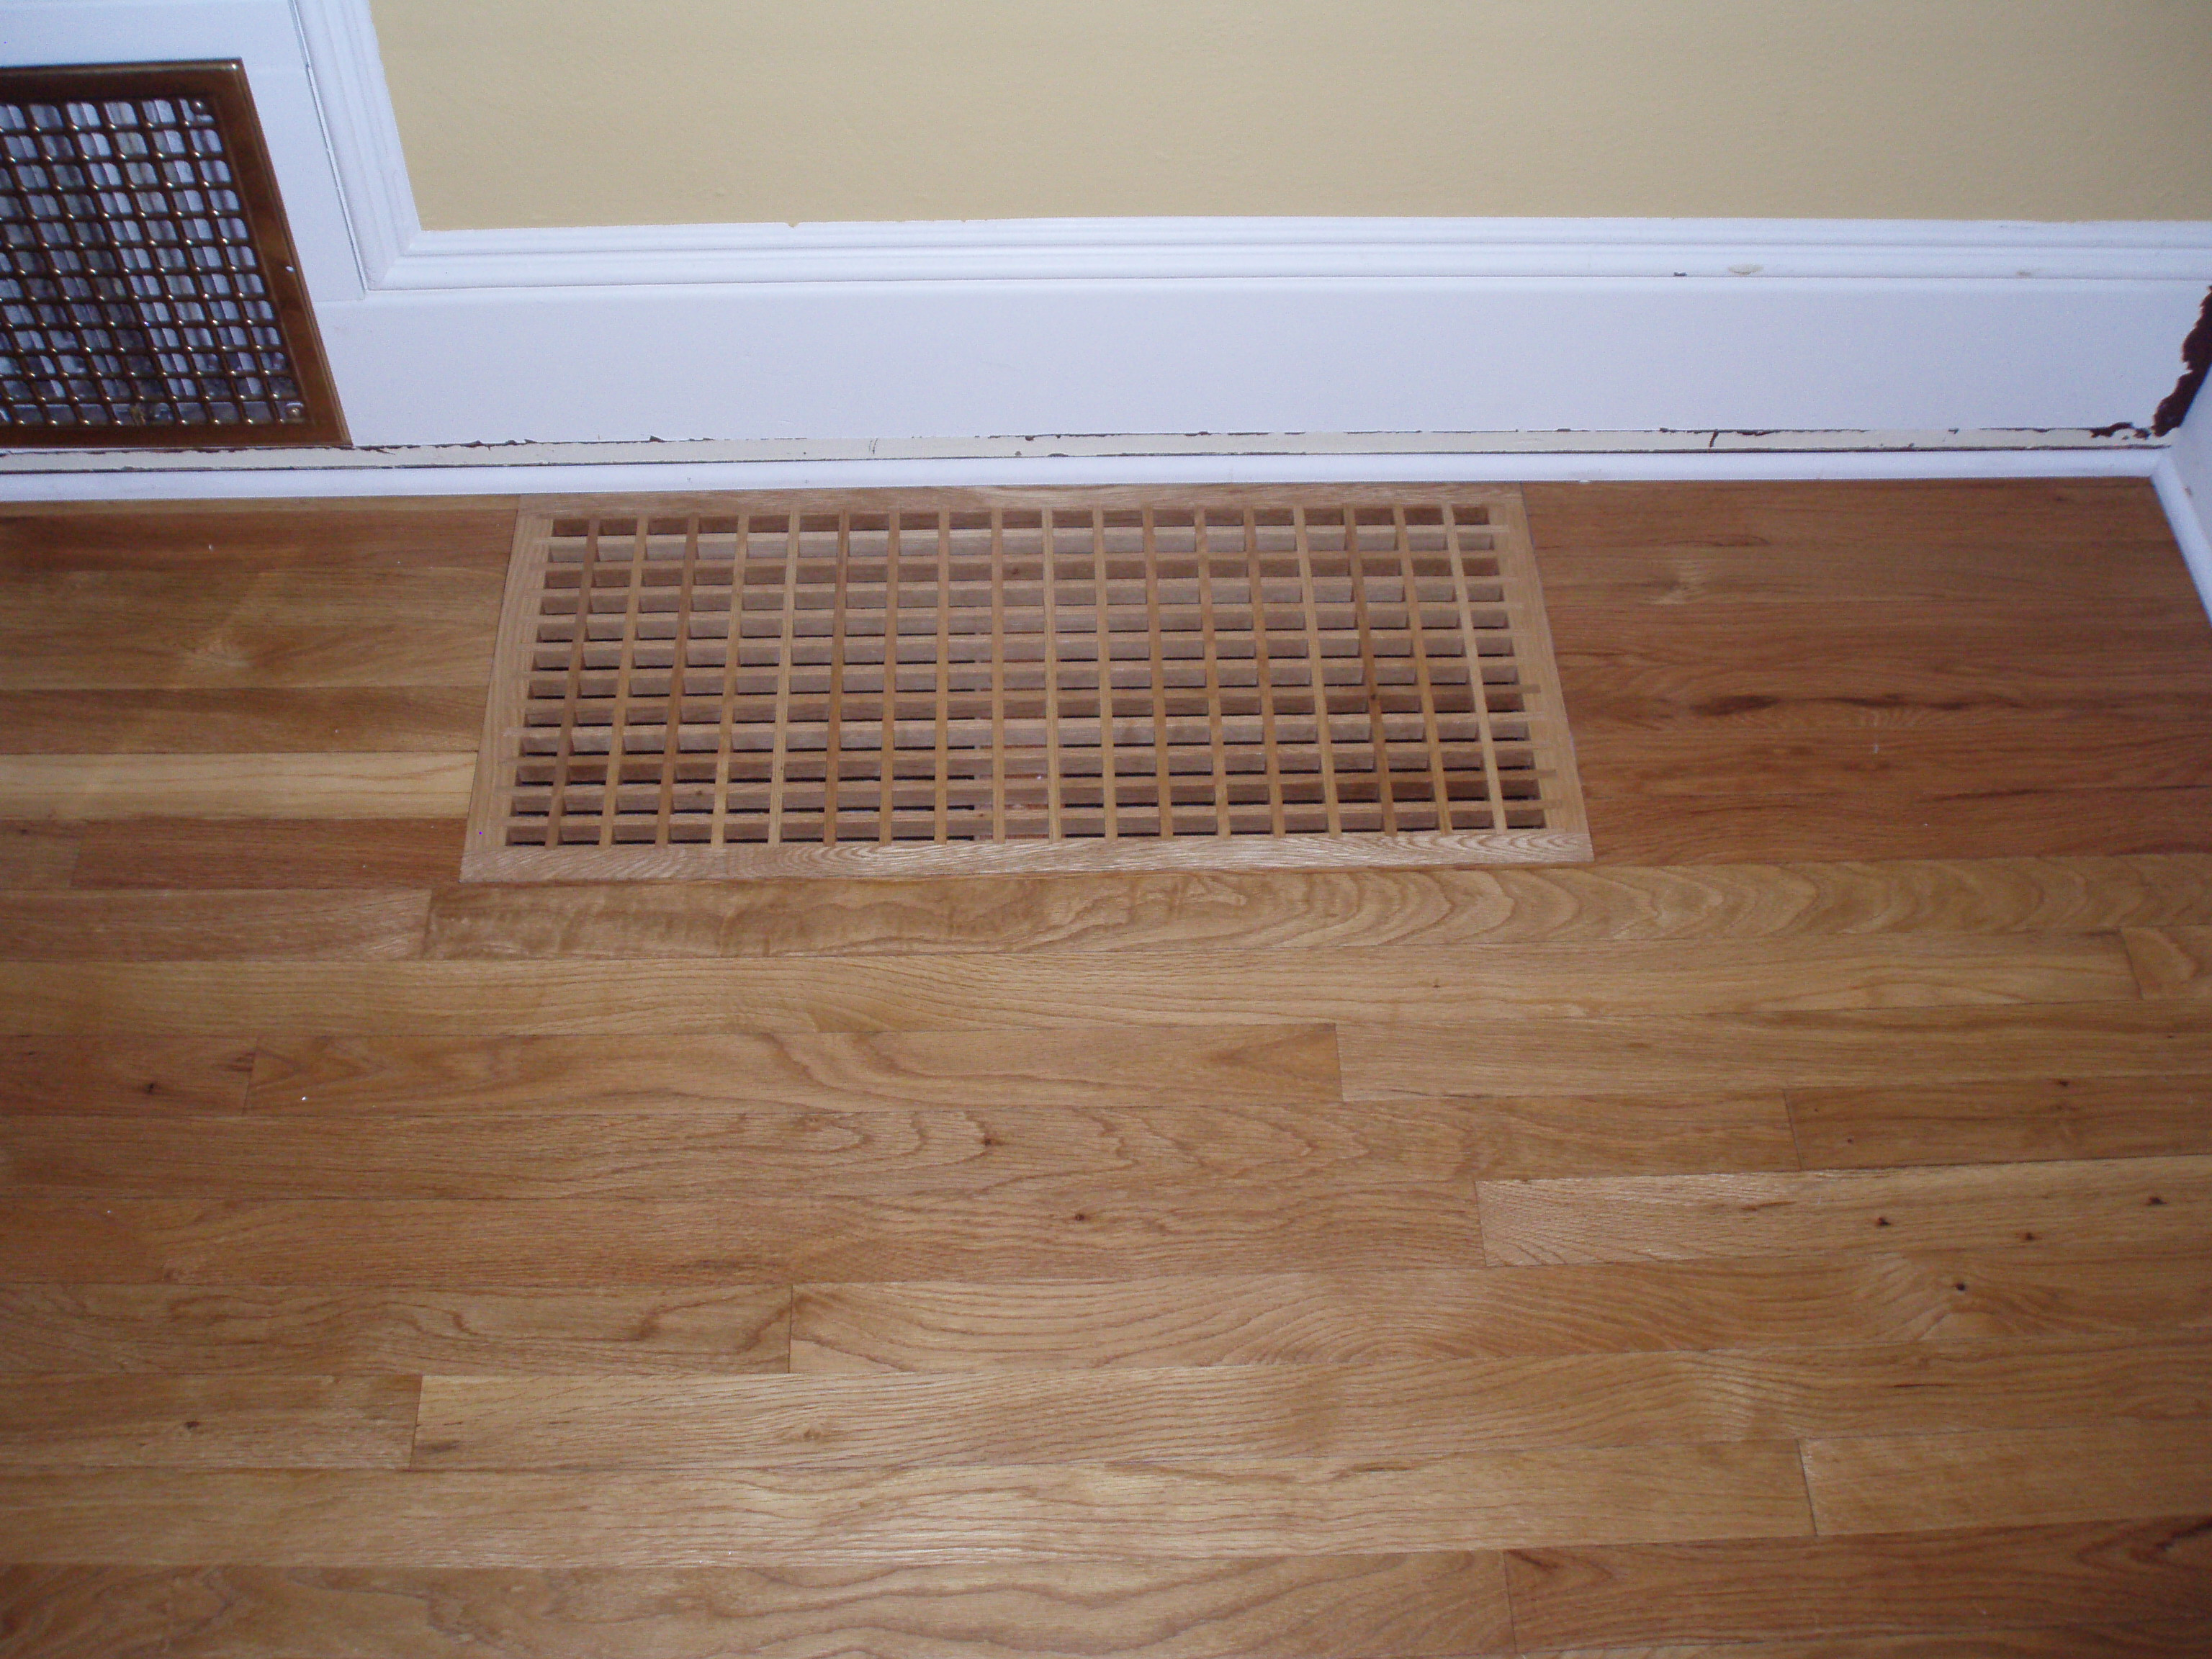 Domino Hardwood Floors Blog » Blog Archive Wood Air Vents for Wood ...